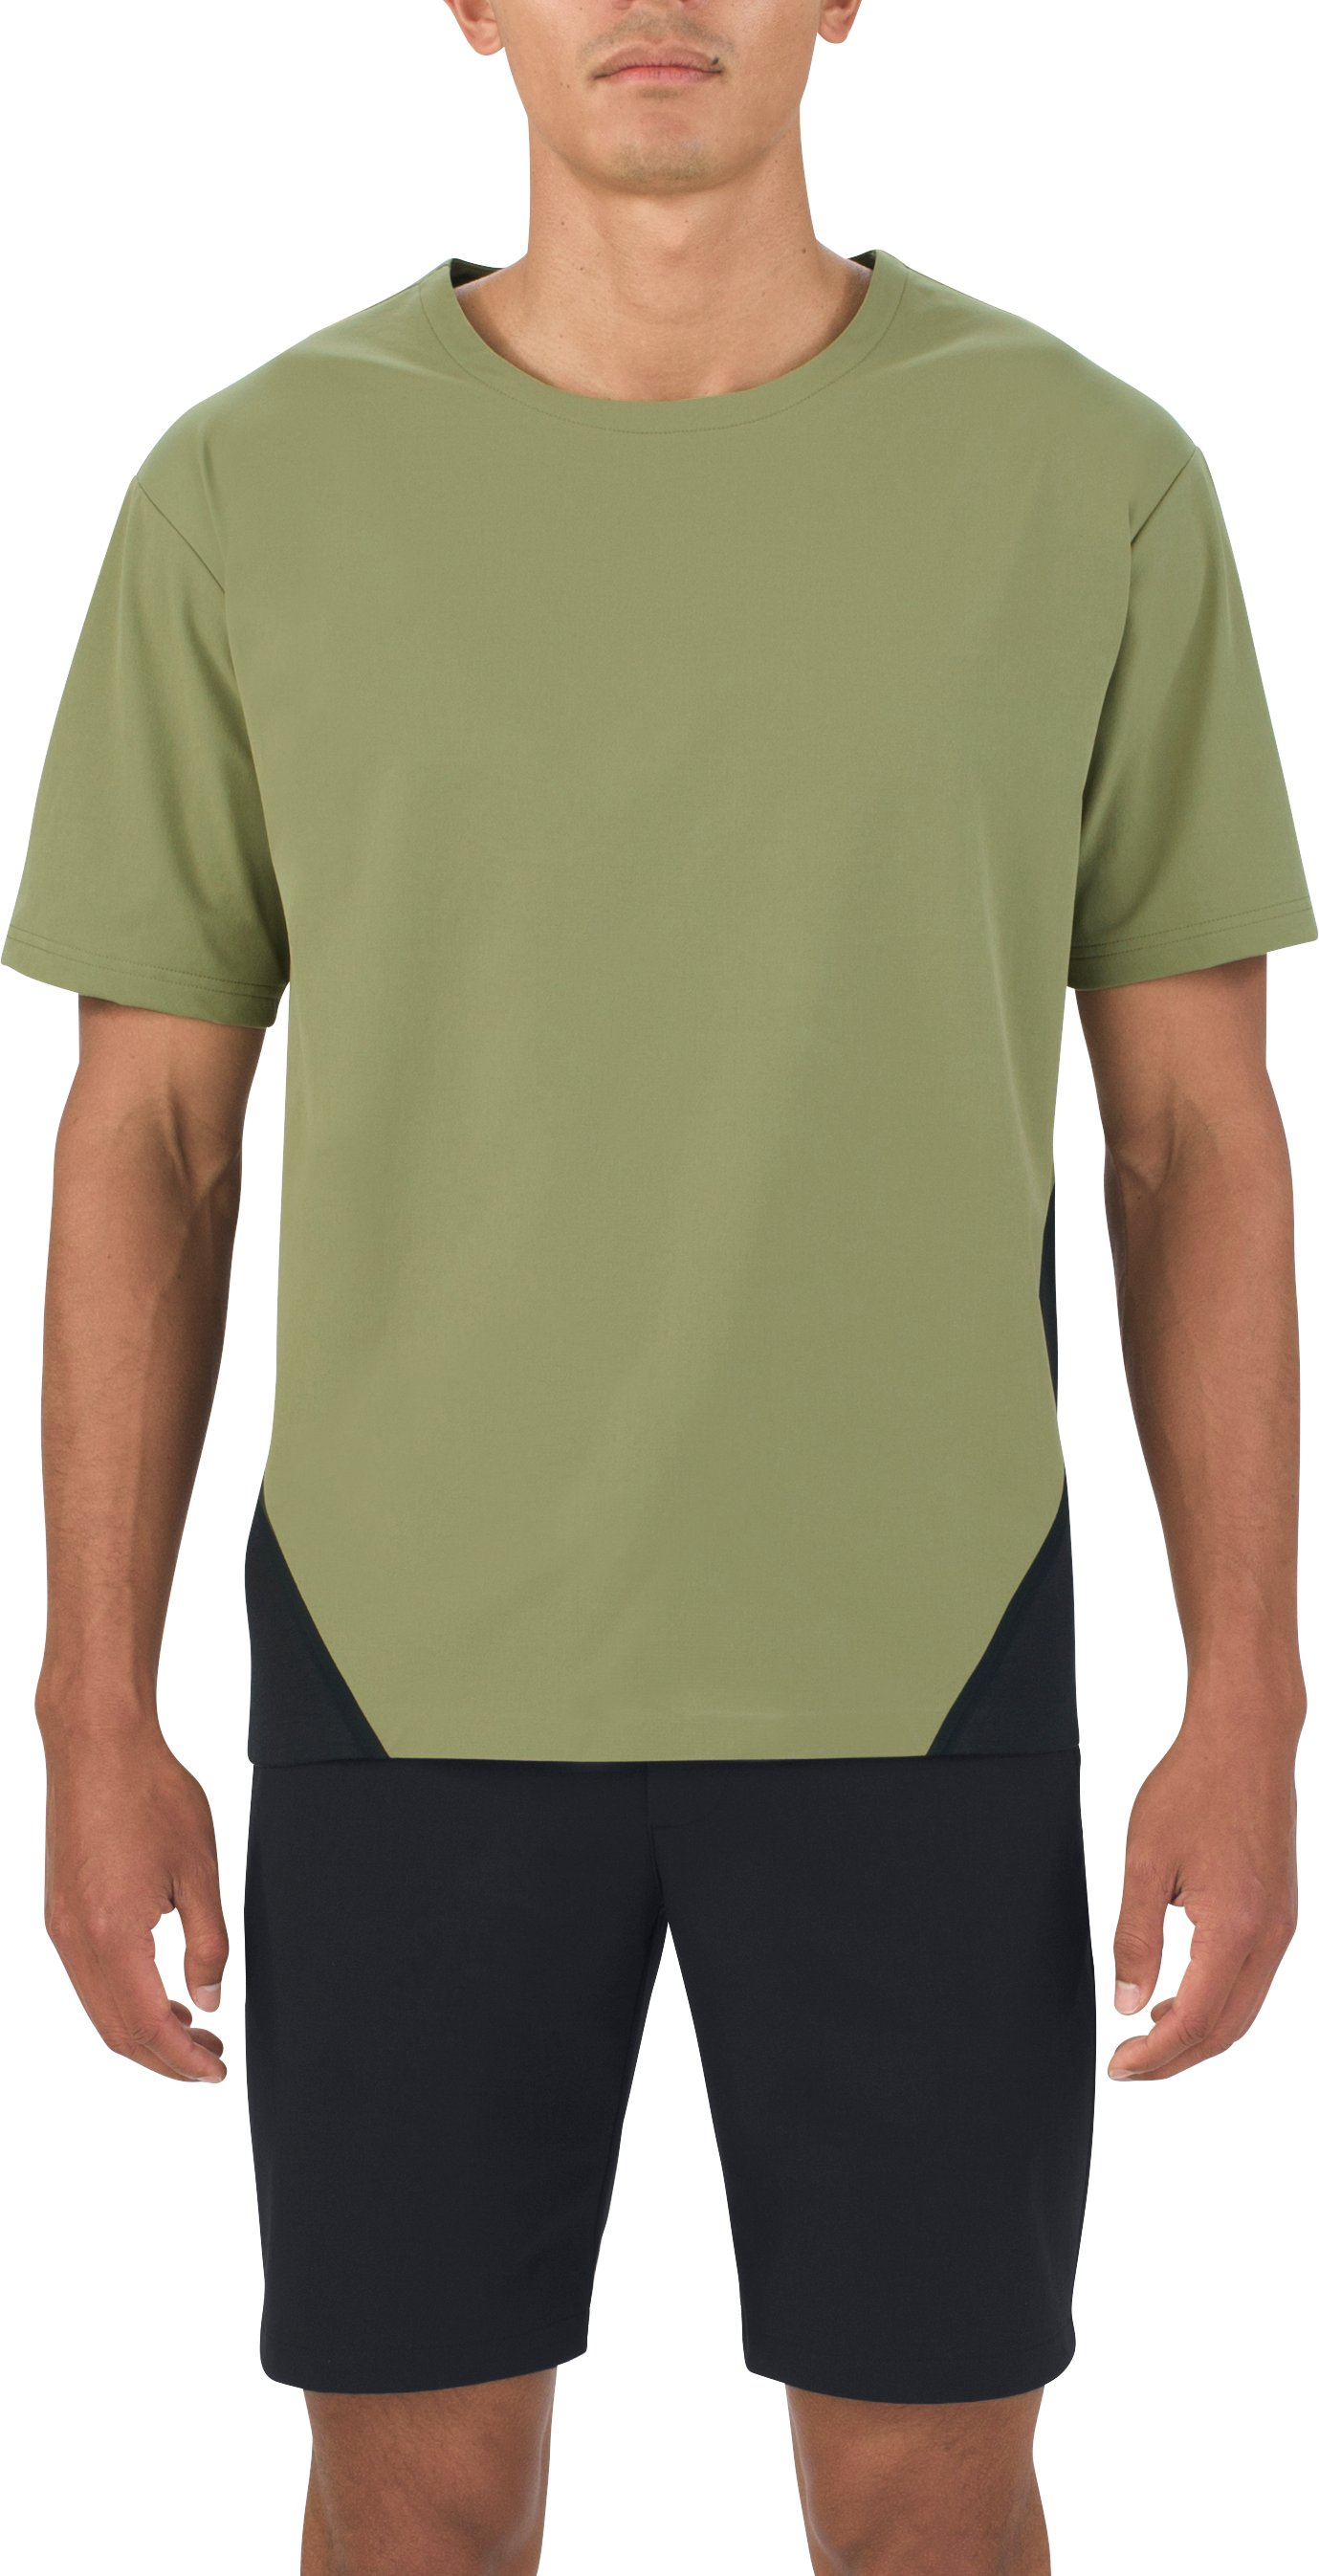 Men's UAS Pivot Crepe Short Sleeve Sweatshirt, MILITARY